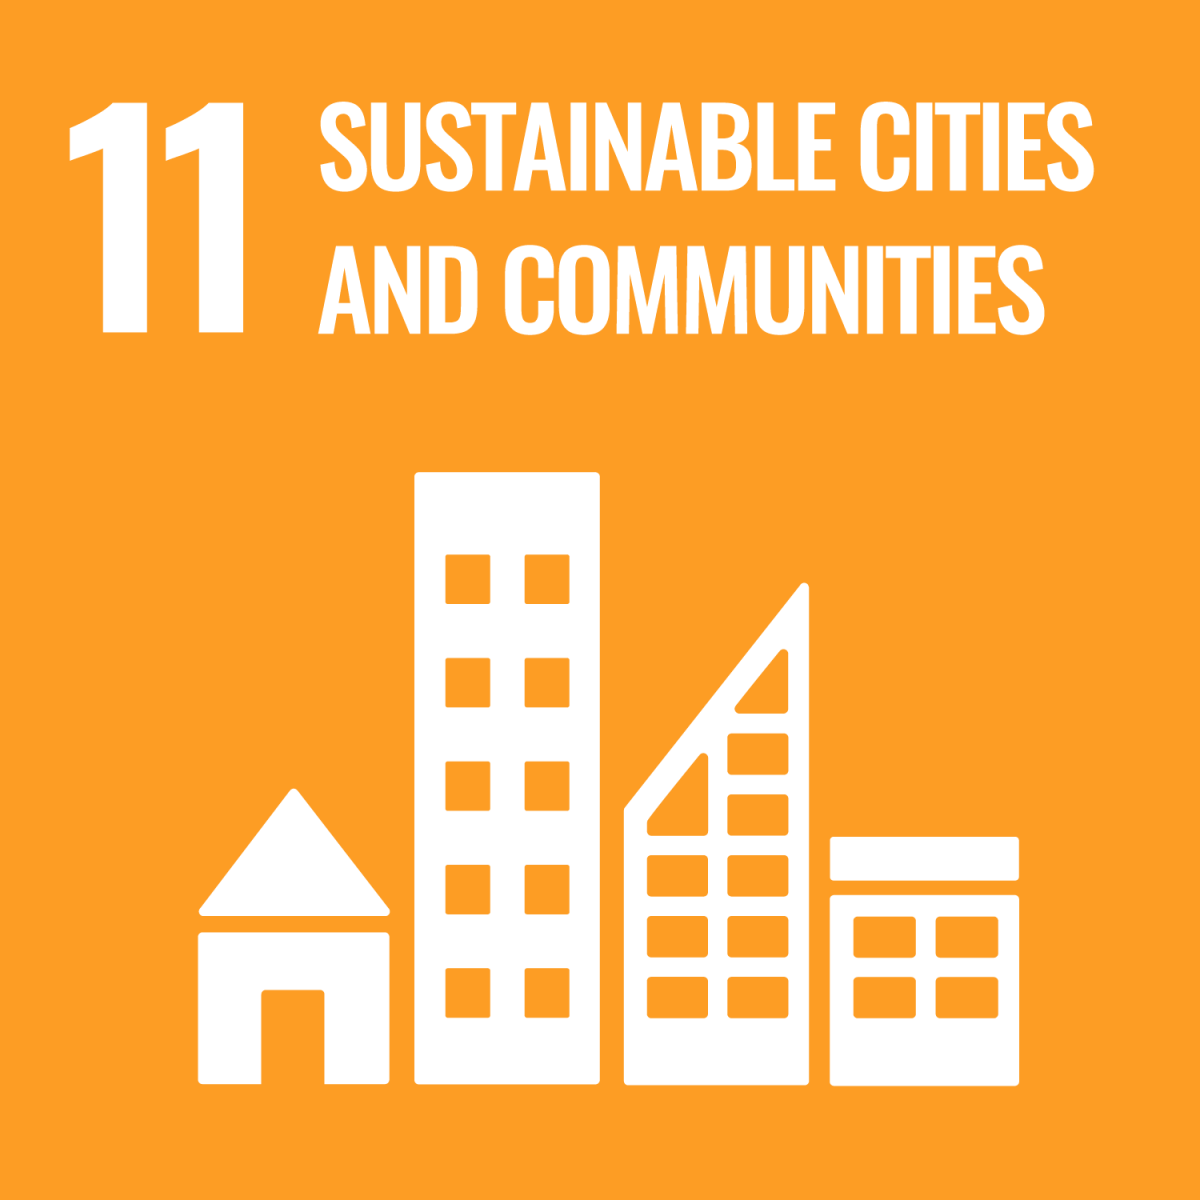 ODS 11 - Sustainable Cities and Communities